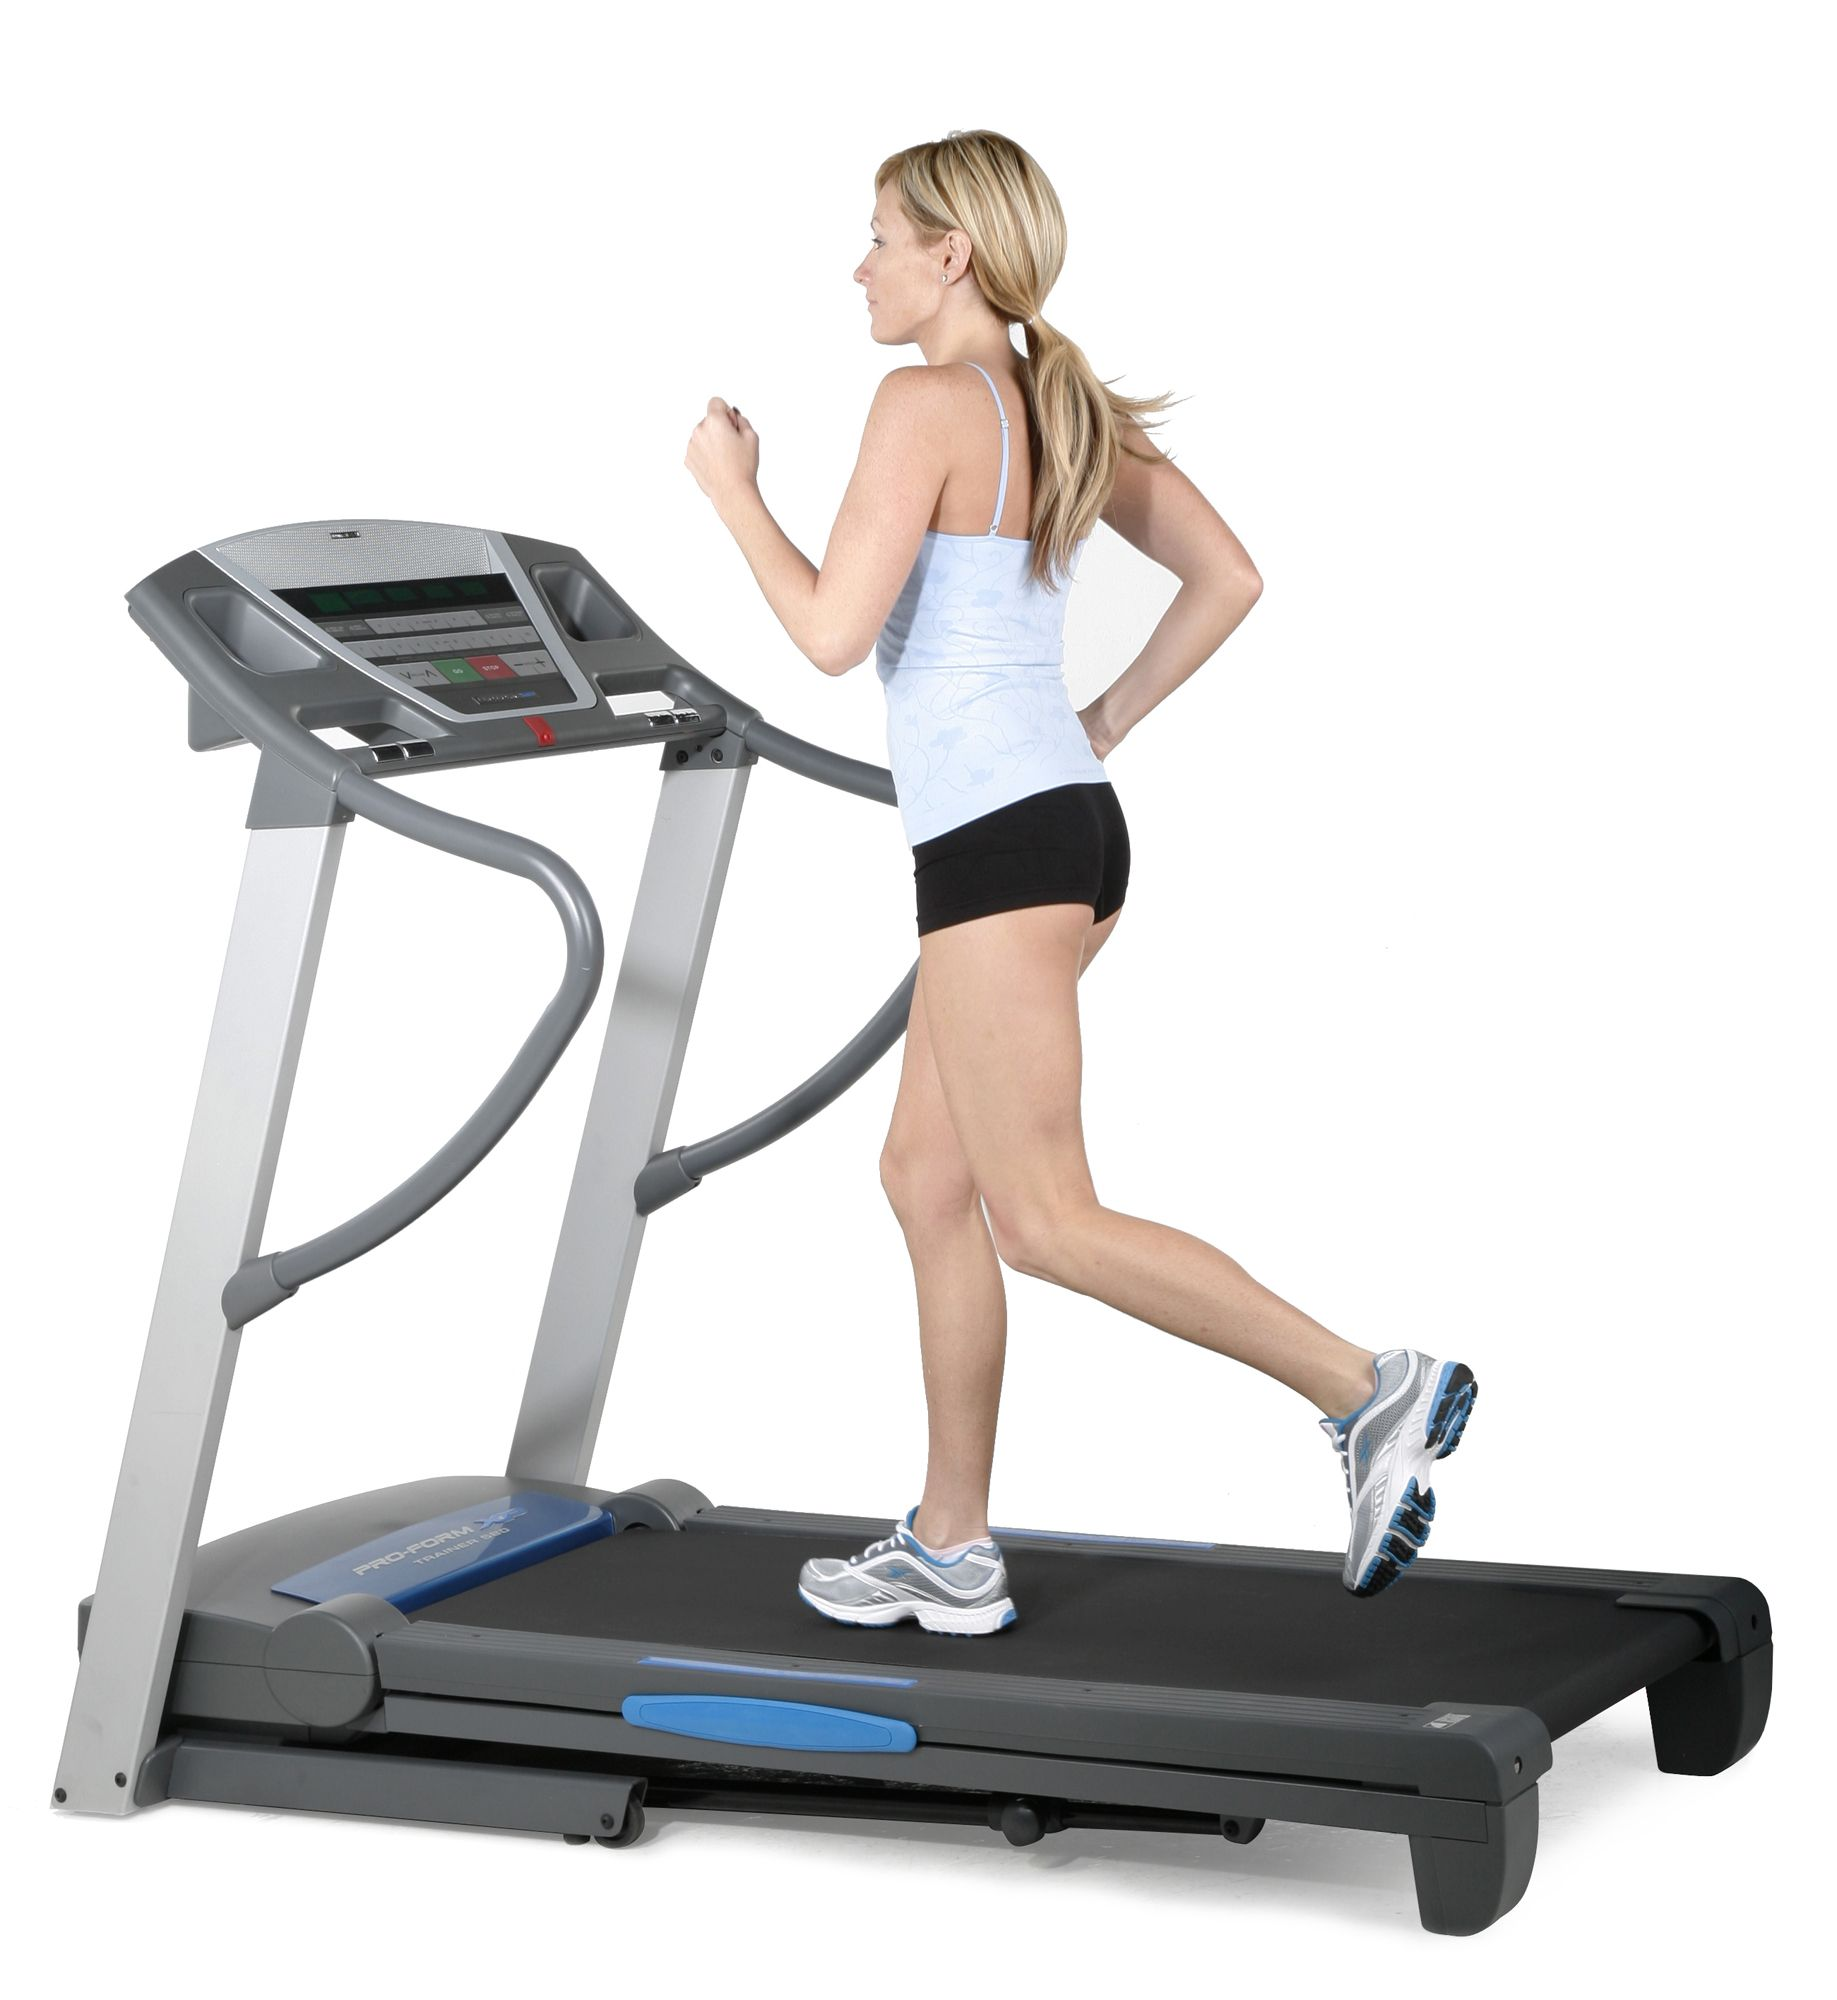 ProForm XP 580 Trainer Treadmill